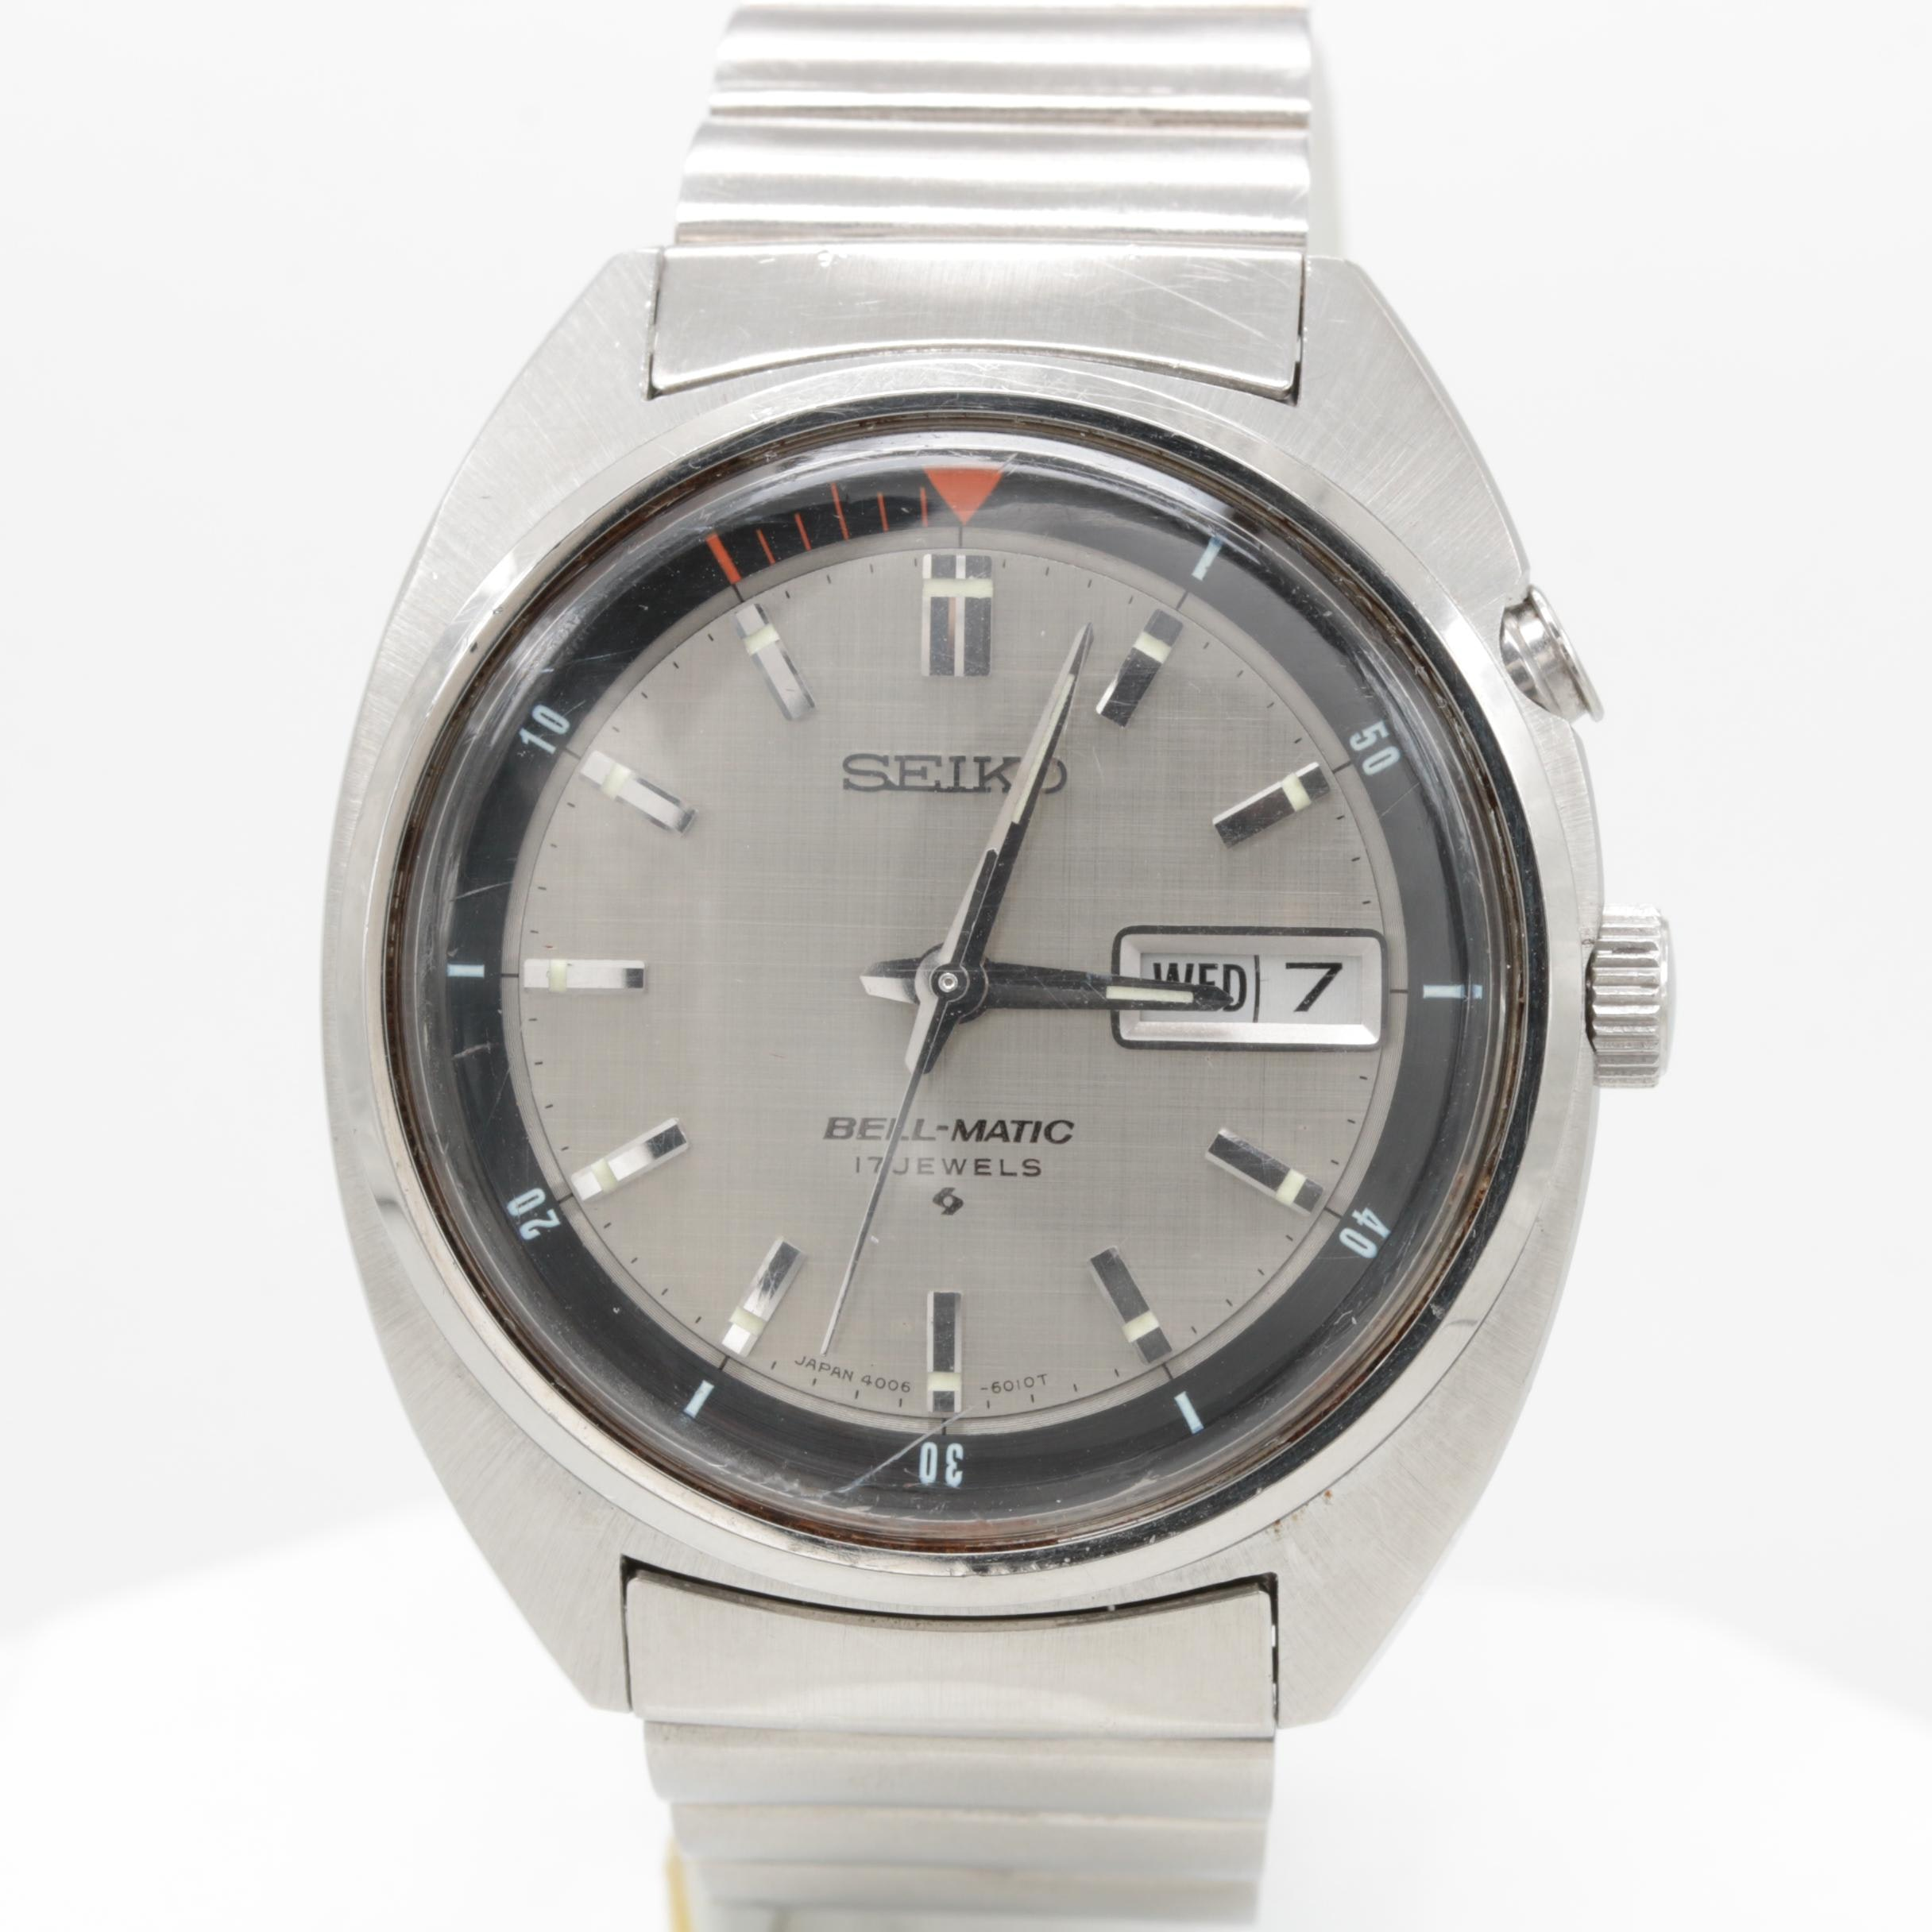 """Vintage Seiko """"Bell-Matic"""" Stainless Steel Automatic Wristwatch"""